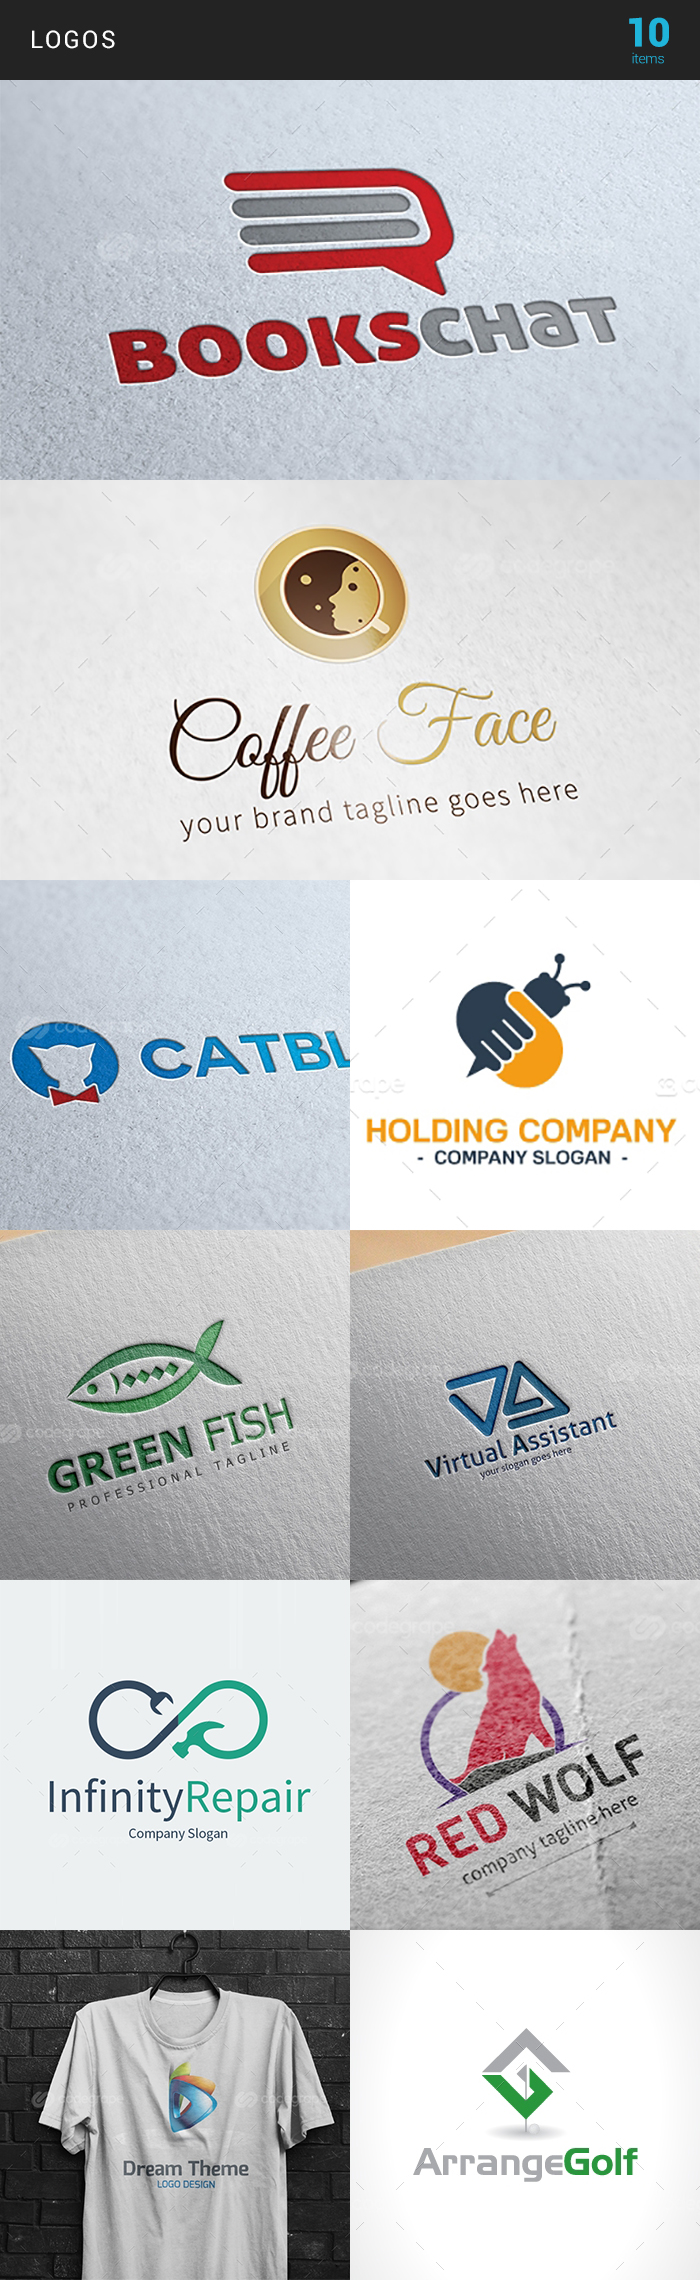 Elegant Print Templates Bundle with 100 Items - Only $19 - logo